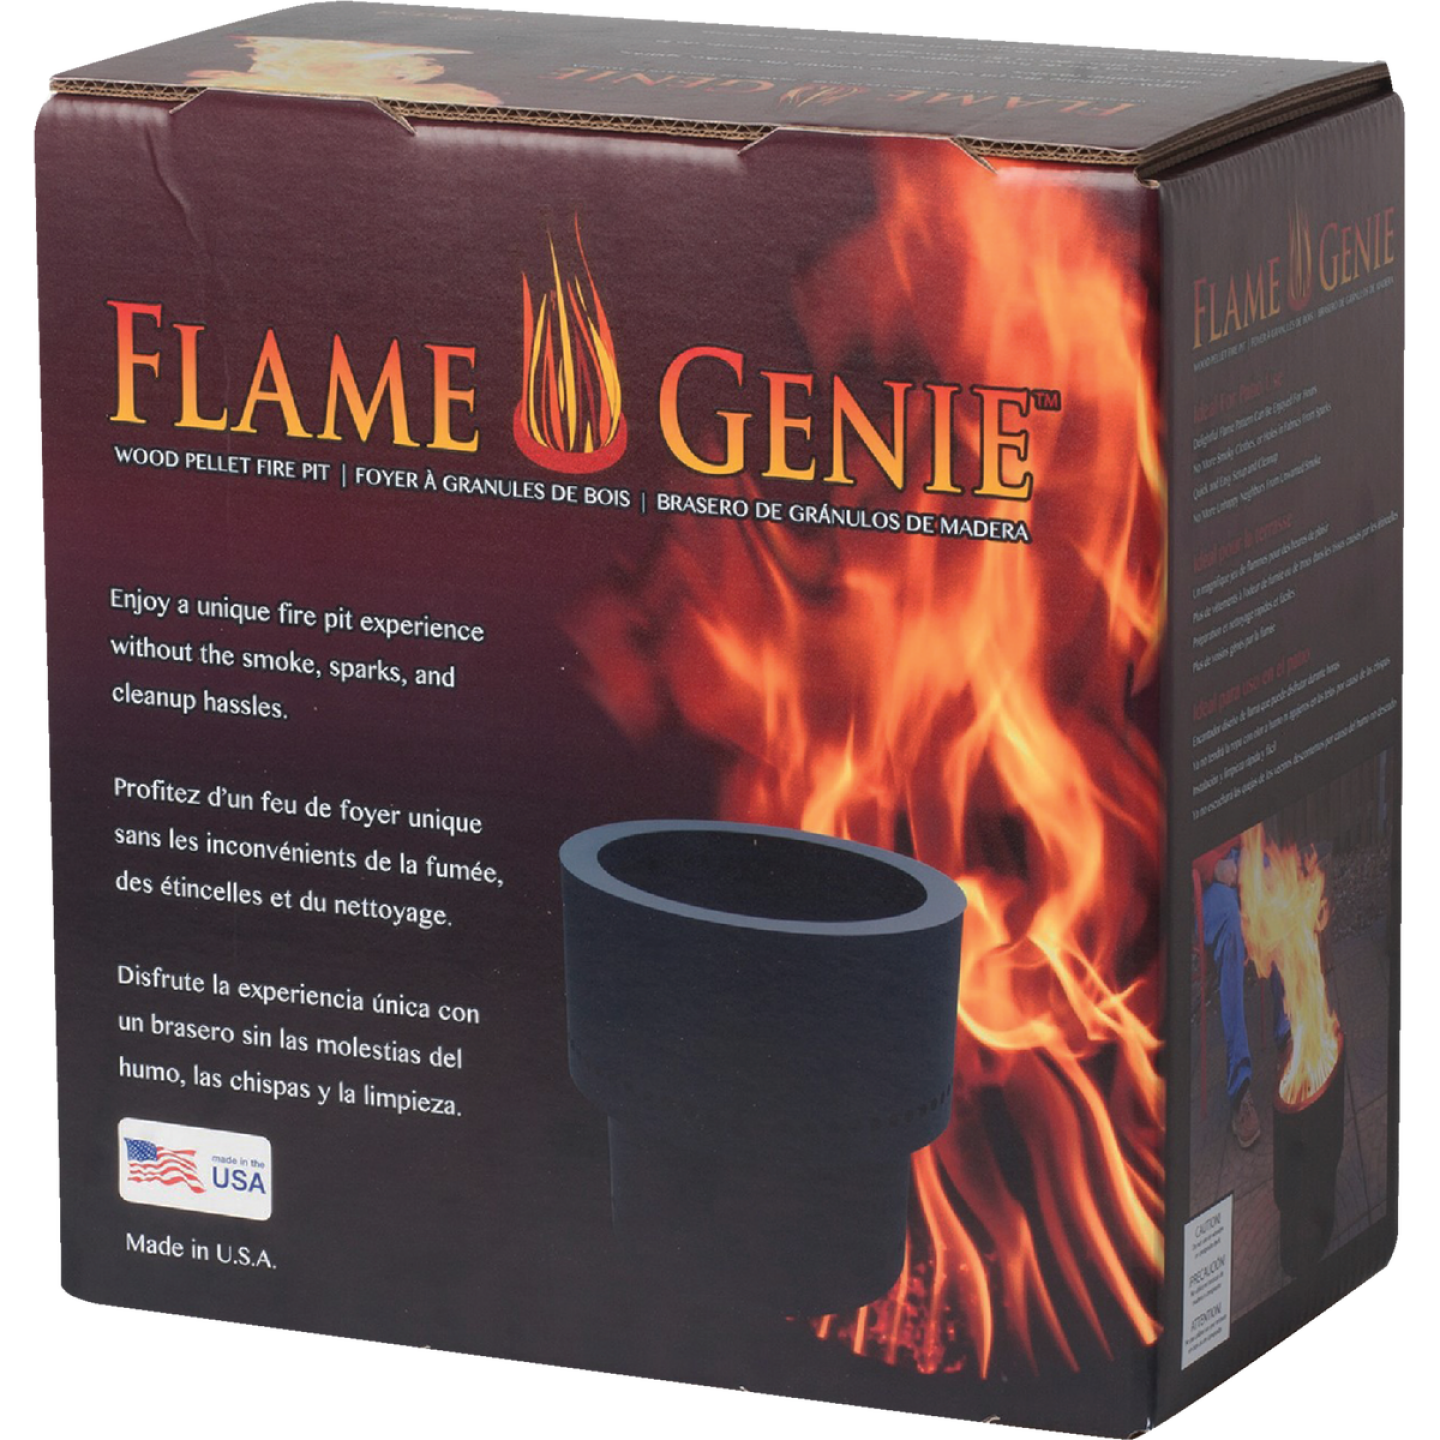 Flame Genie 13.5 In. Steel Round Fire Pit Image 2